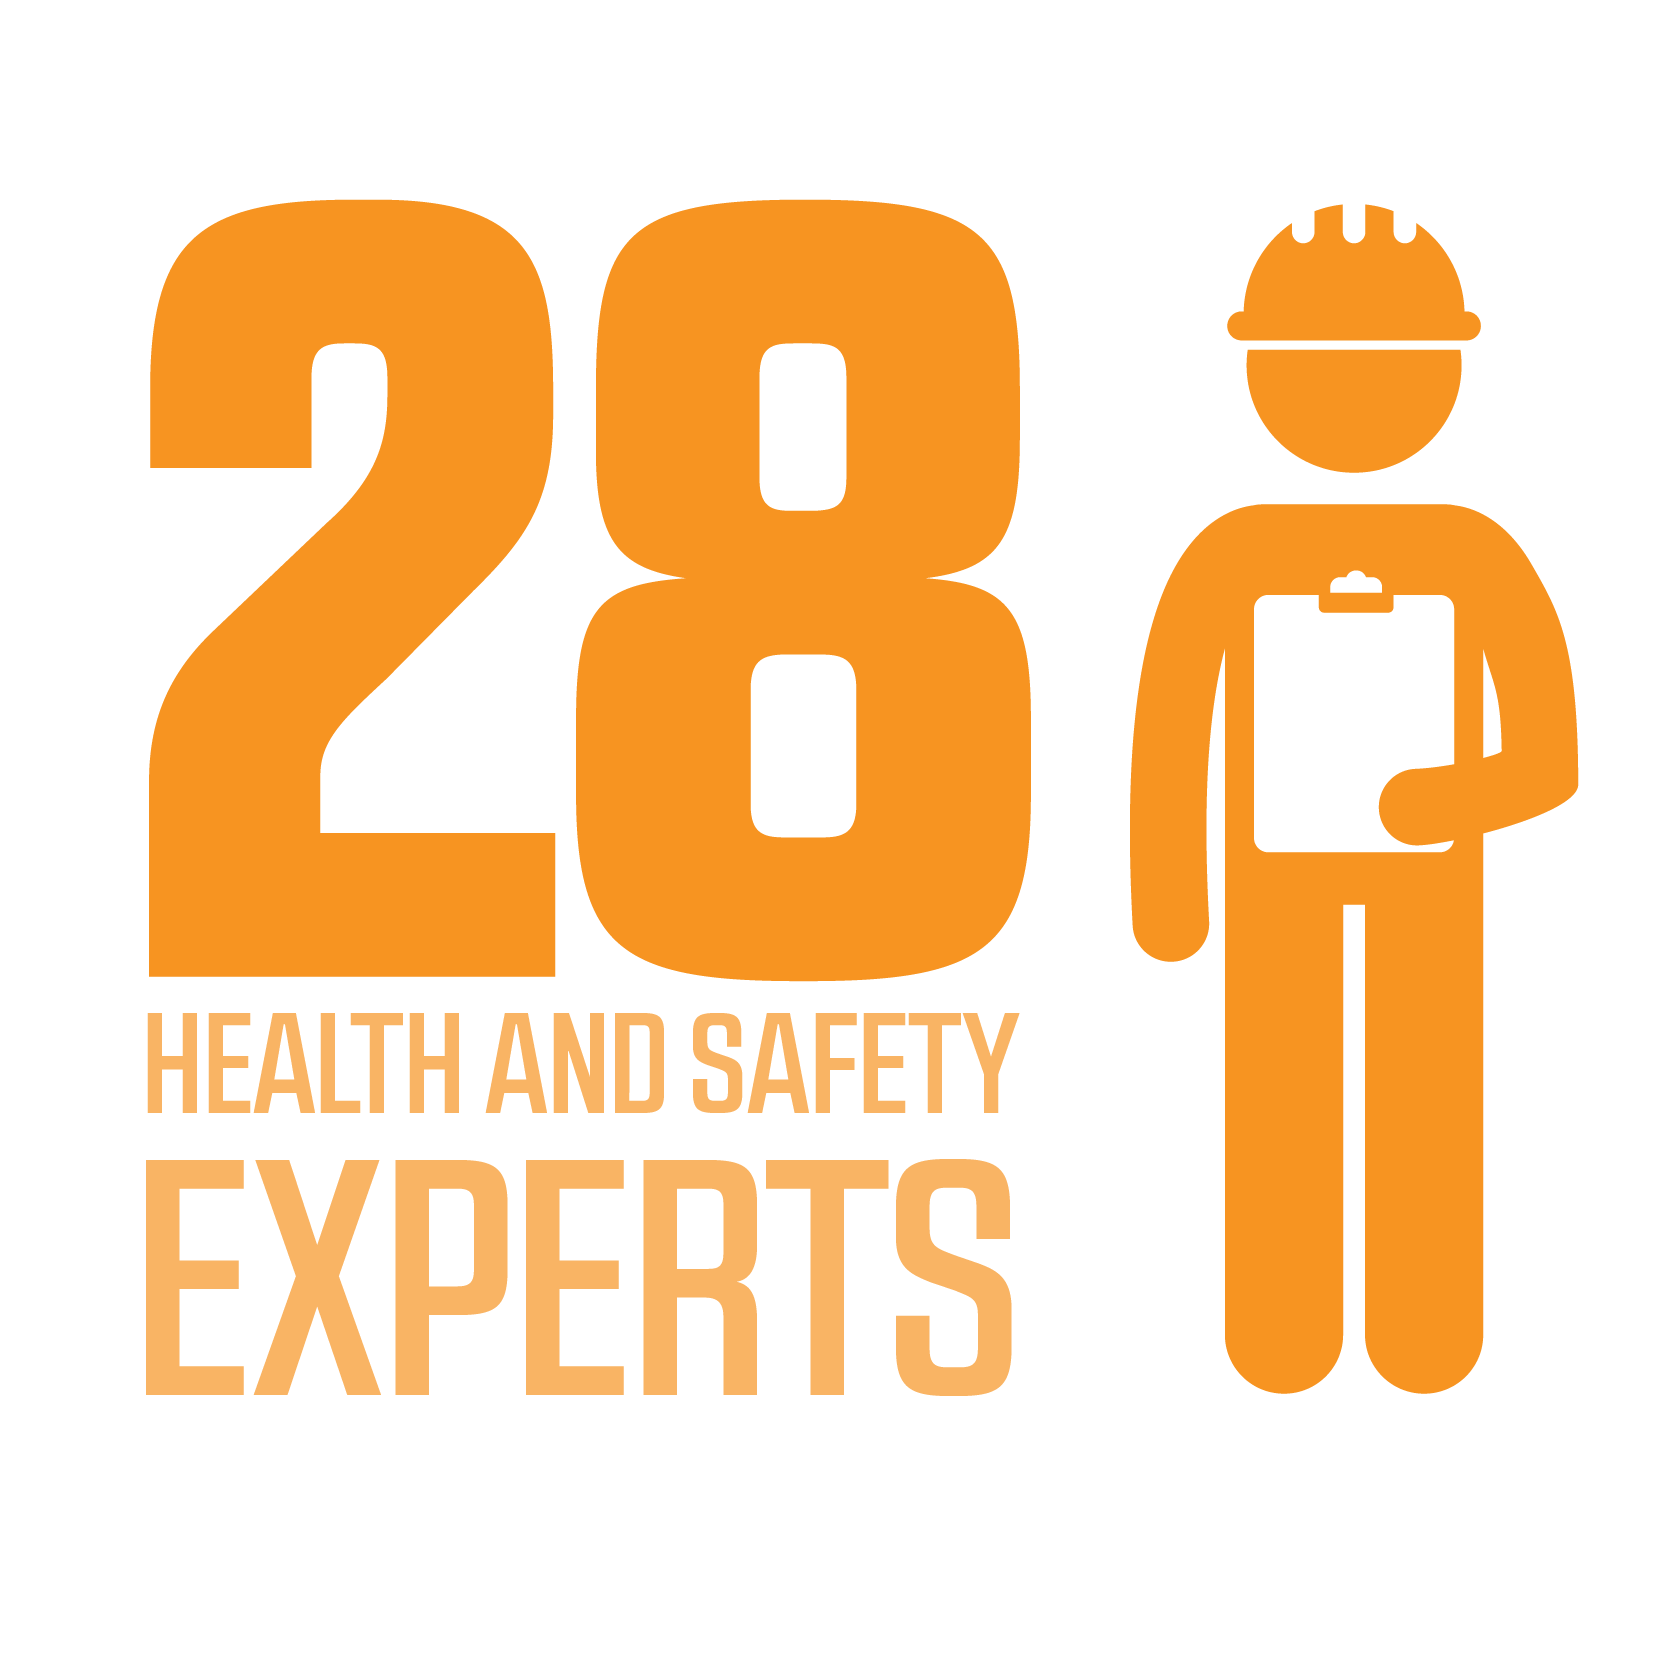 28 safety experts